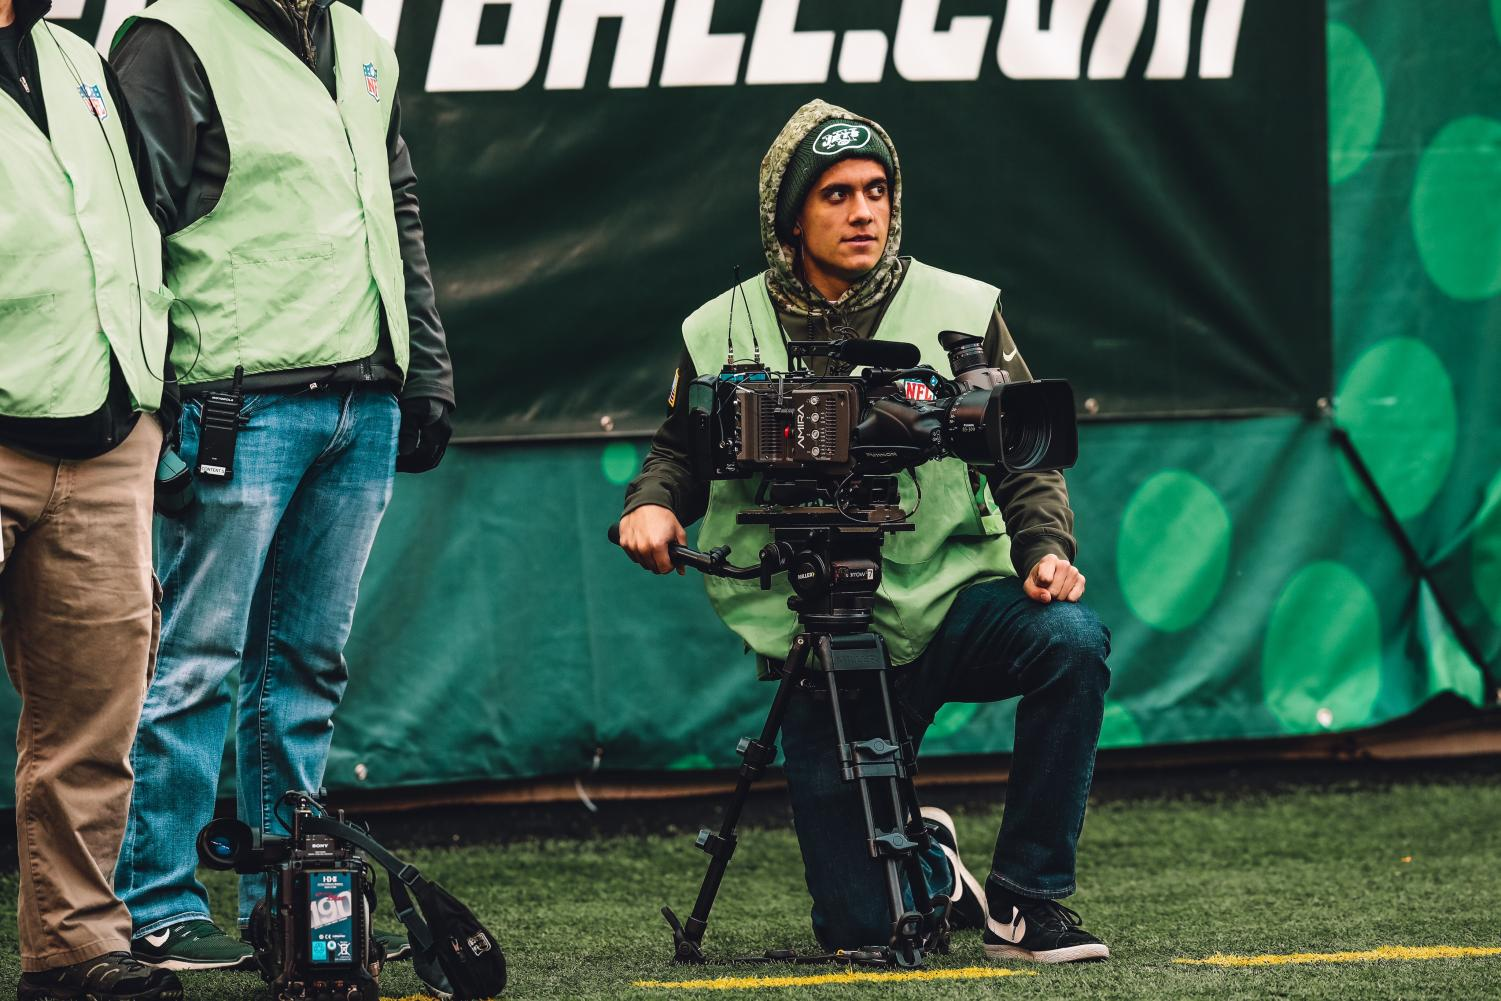 Pino films a Jets game from the sidelines.